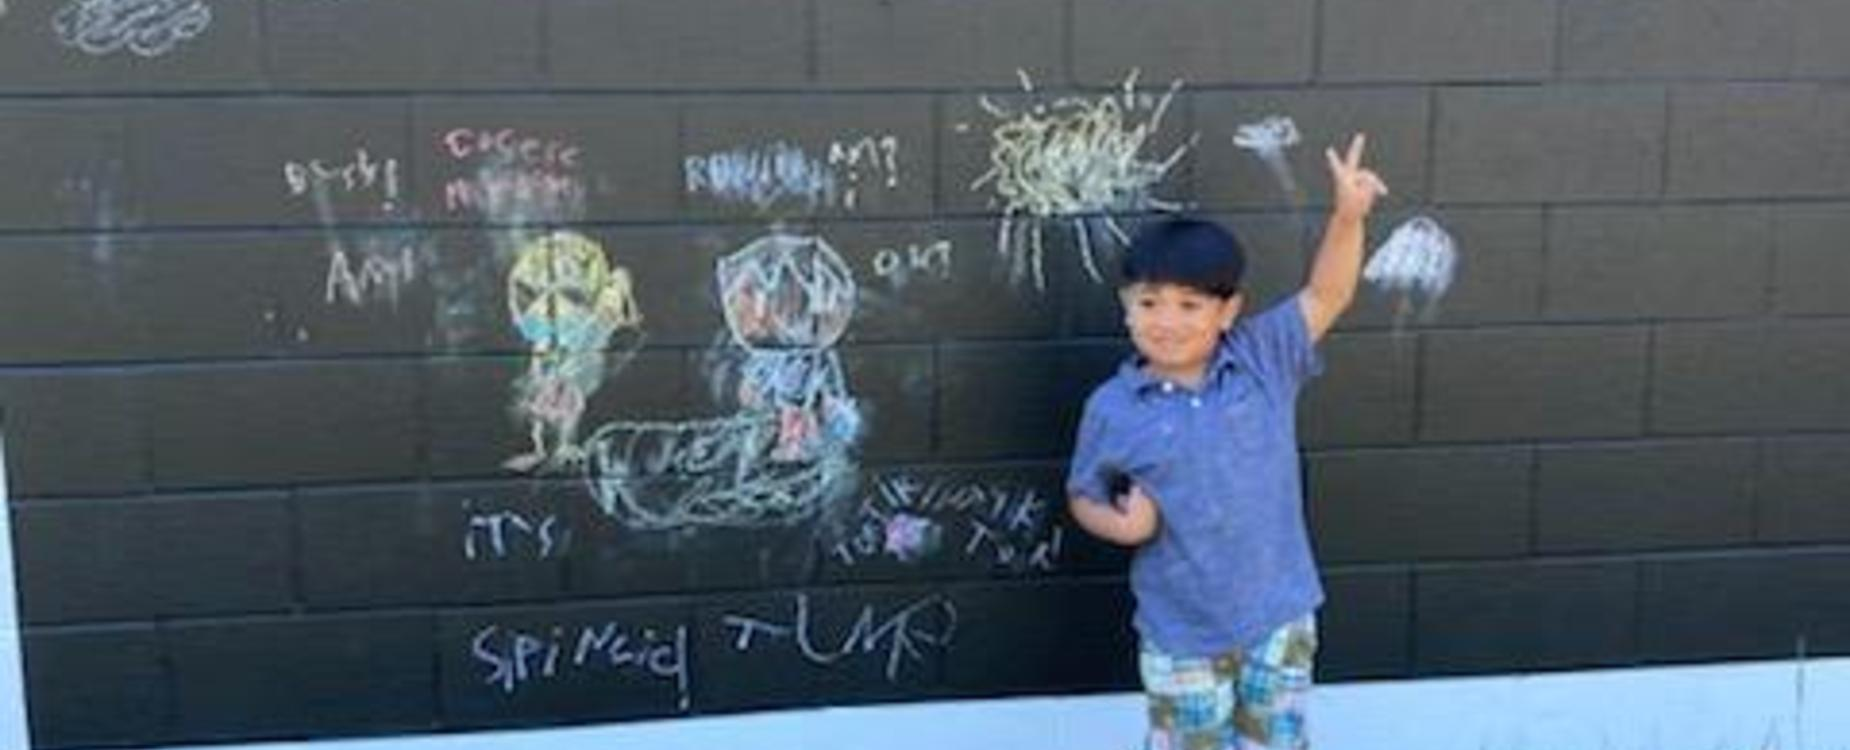 A student posing in front of his drawing on the new outdoor chalkboard paint walls.